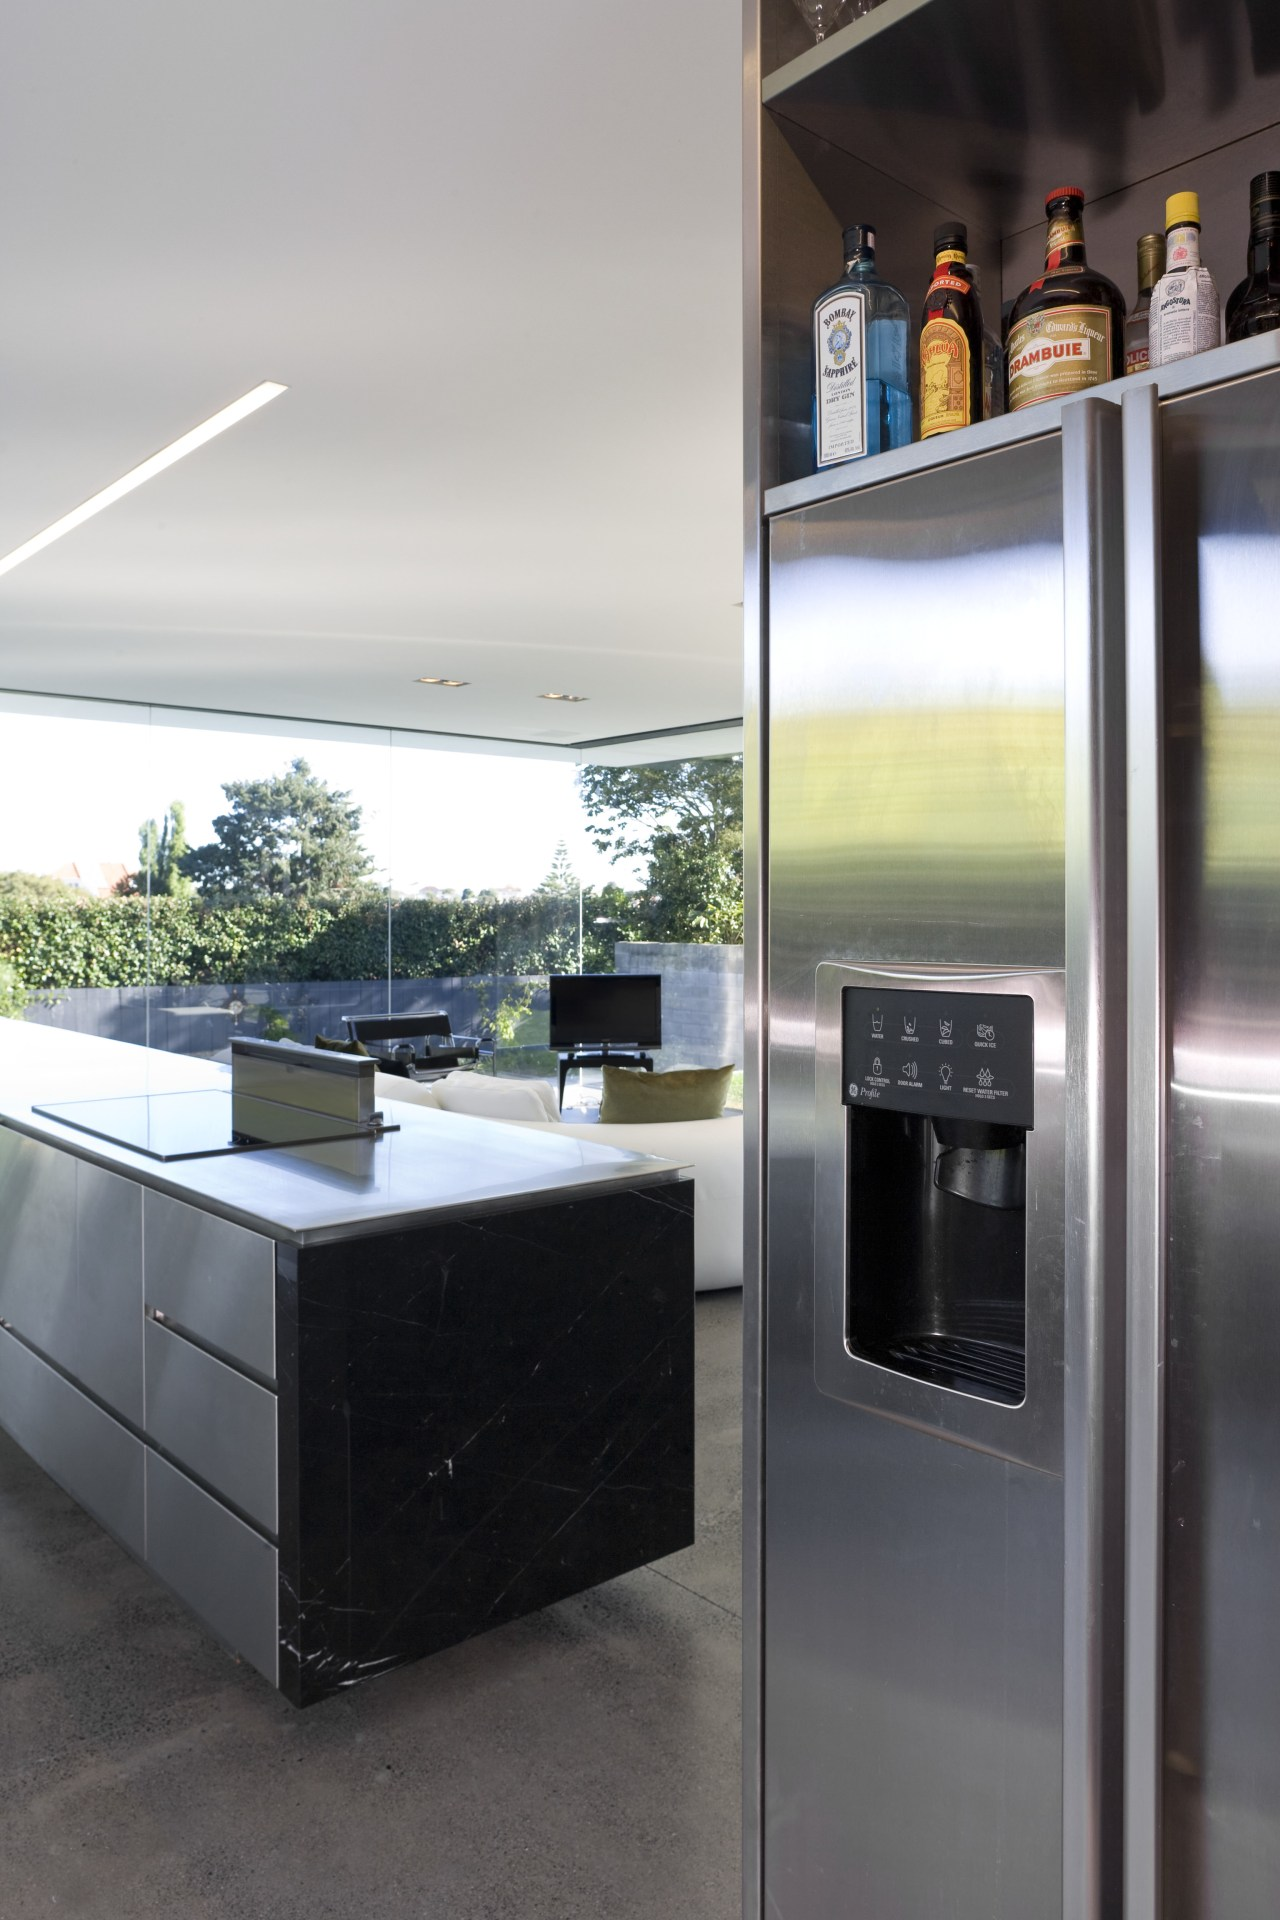 View of open-plan kitchen featuring polished concrete flooring, countertop, home appliance, interior design, kitchen, major appliance, white, black, gray